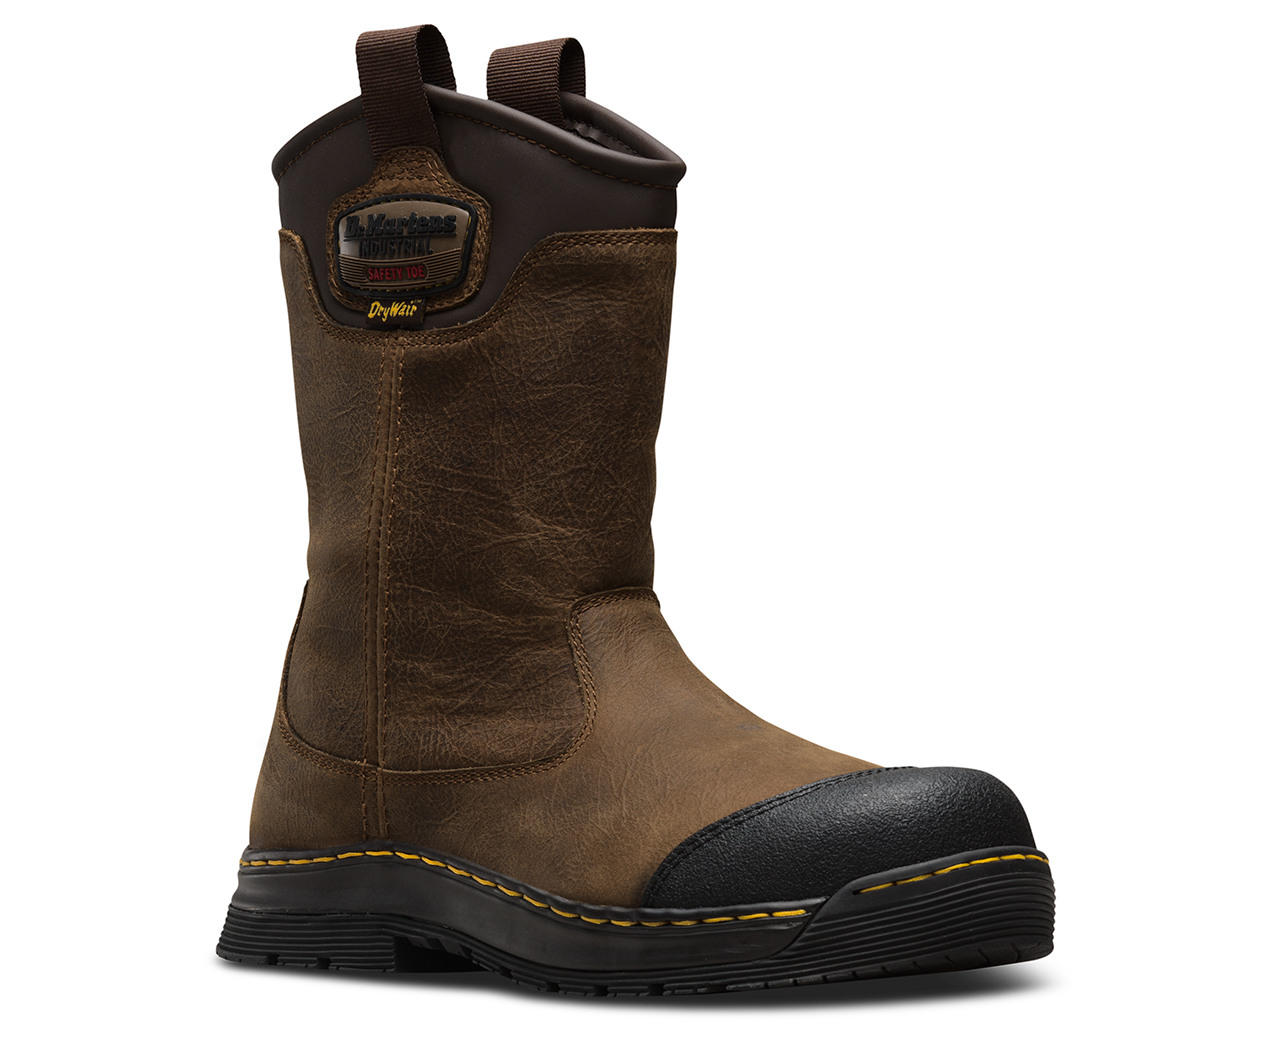 Dr. Martens Rush Electrical Hazard Waterproof Composite Toe Rigger Boot x64dlr